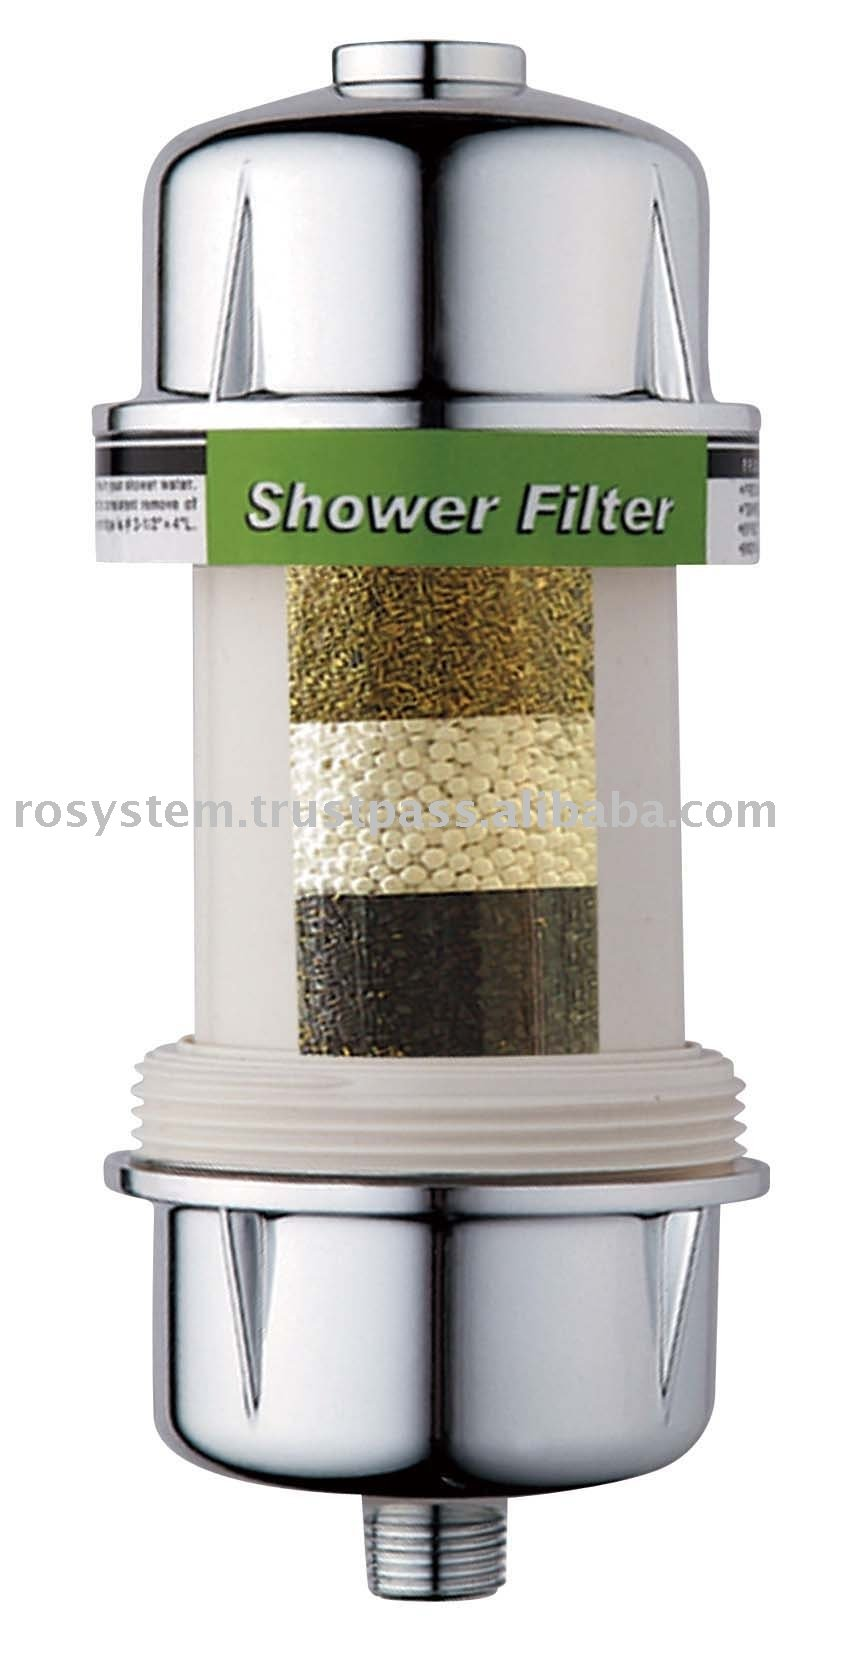 shower filter. Black Bedroom Furniture Sets. Home Design Ideas